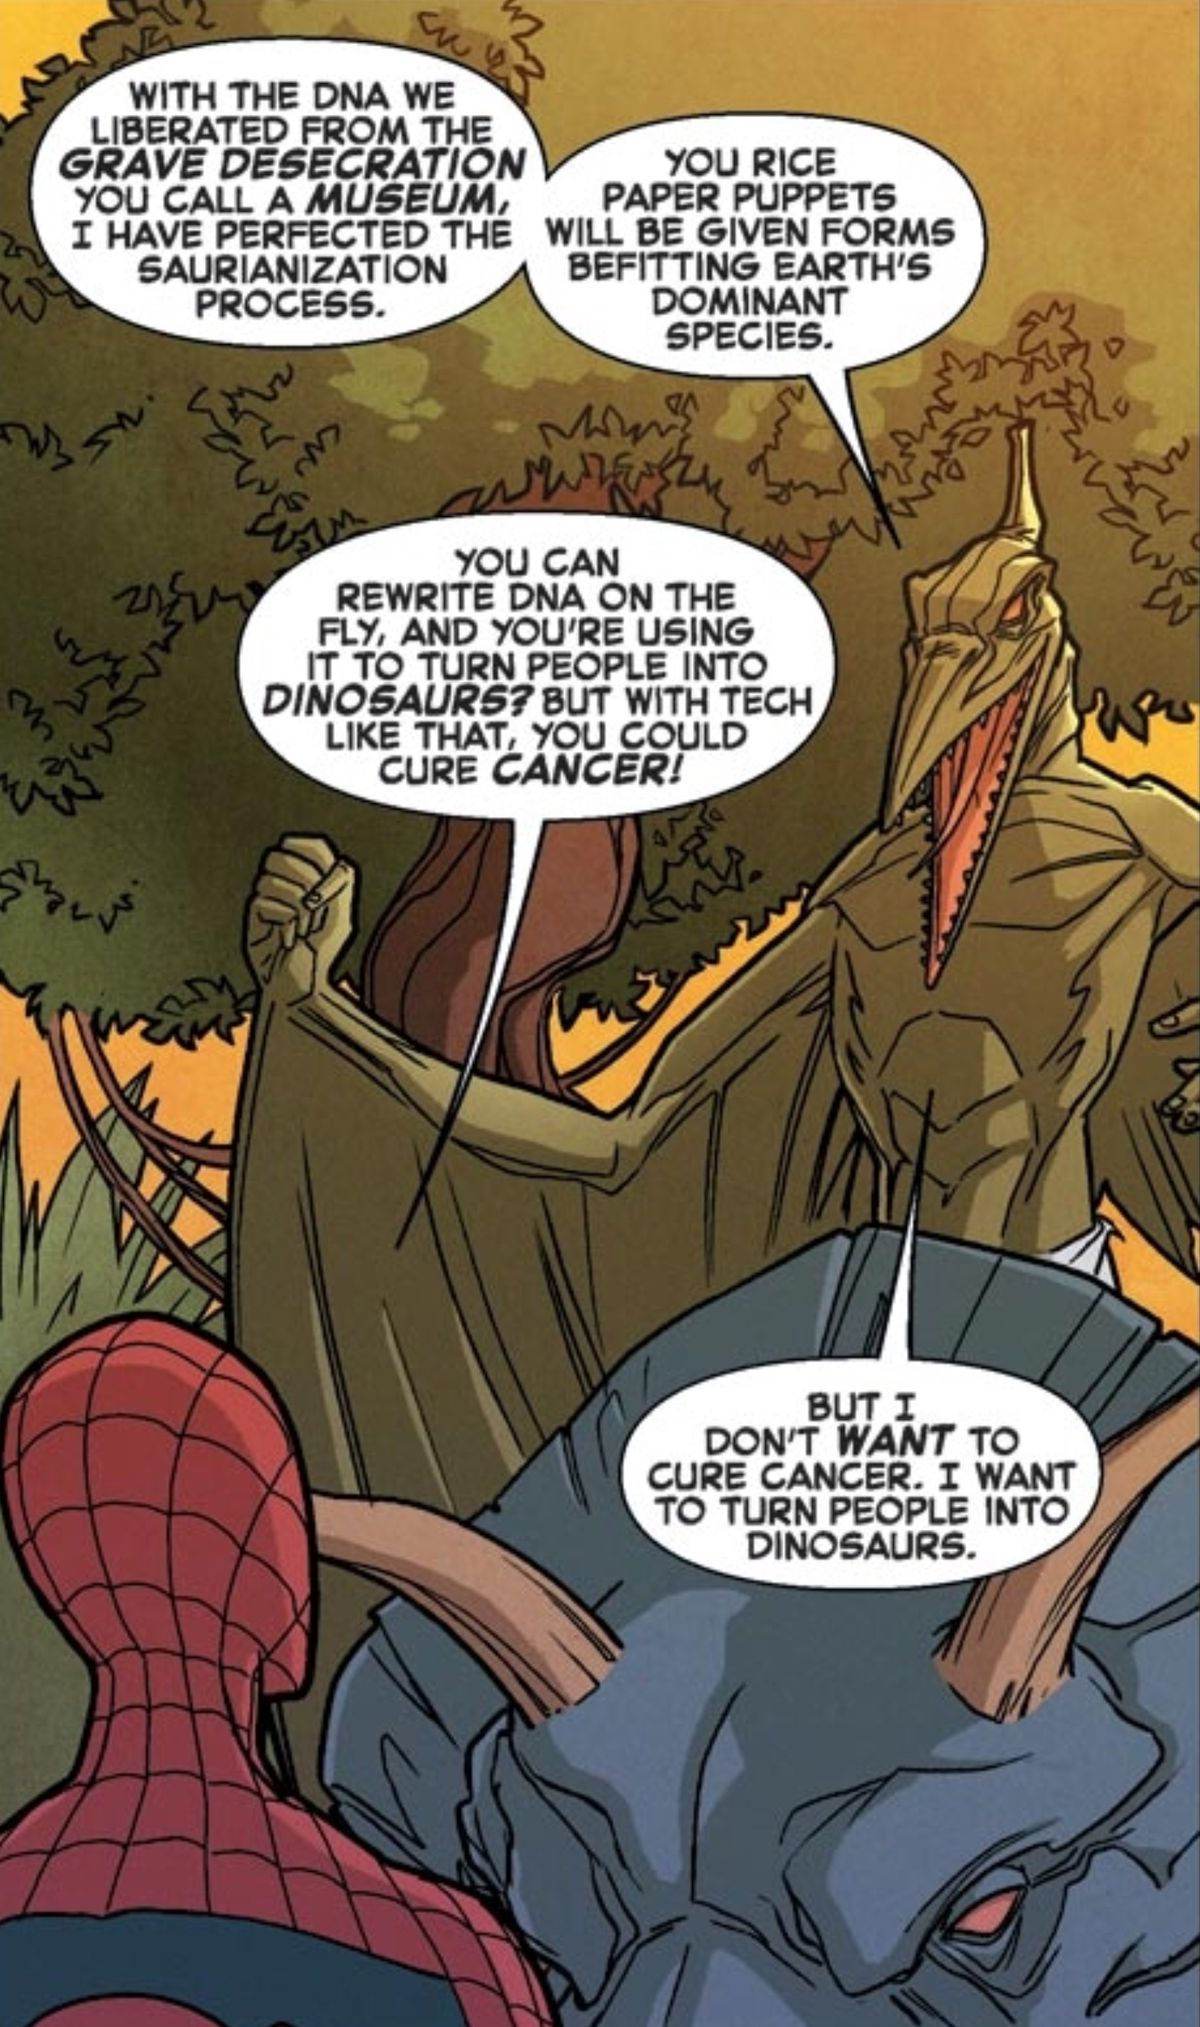 """""""With tech like that, you could cure cancer!"""" Spider-Man tells the supervillain Sauron. Sauron, who is an anthropomorphic pterodactyl in a loincloth, riding a triceratops, replies """"But I don't want to cure cancer. I want to turn people into dinosaurs,"""" in Spider-Man and the X-Men #2, Marvel Comics (2015)."""